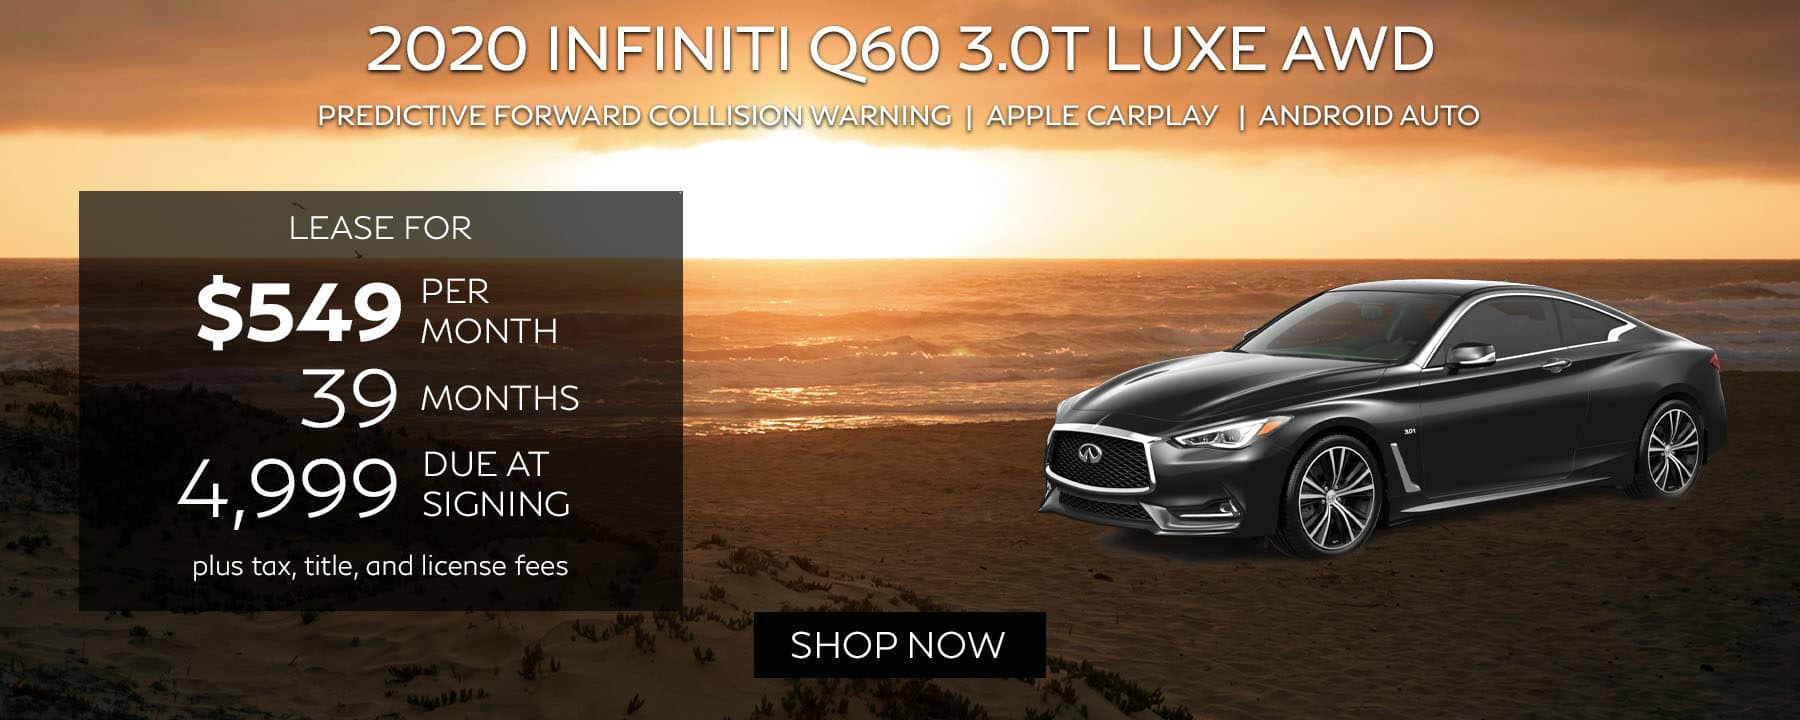 Lease a 2020 INFINITI Q60 3.0T LUXE AWD for $549 per month with $4,999 down.